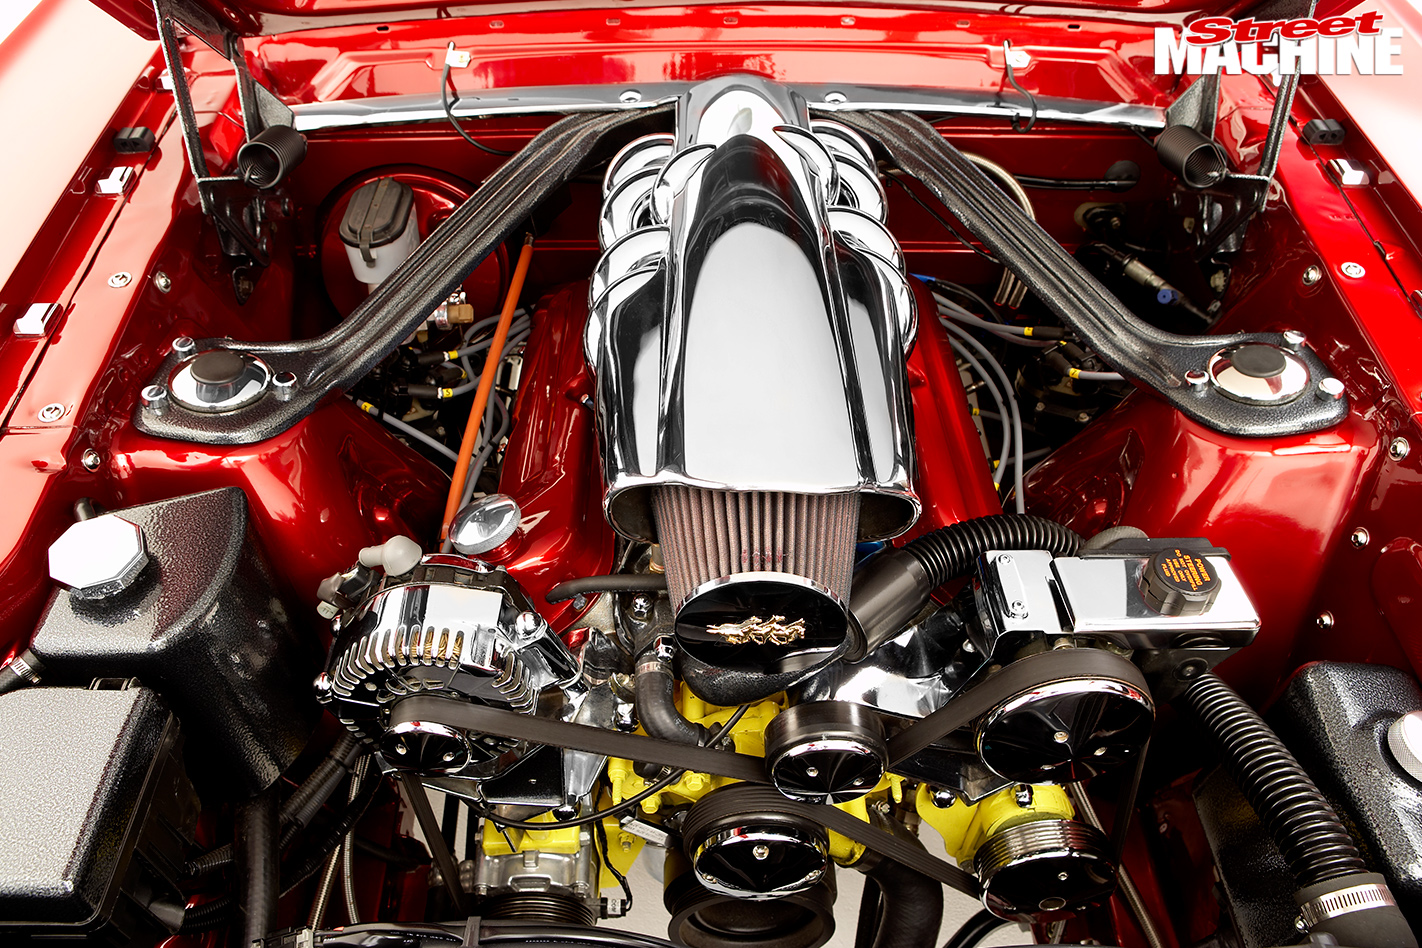 Marshall -Perron -Pro -Touring -Mustang -engine -bay